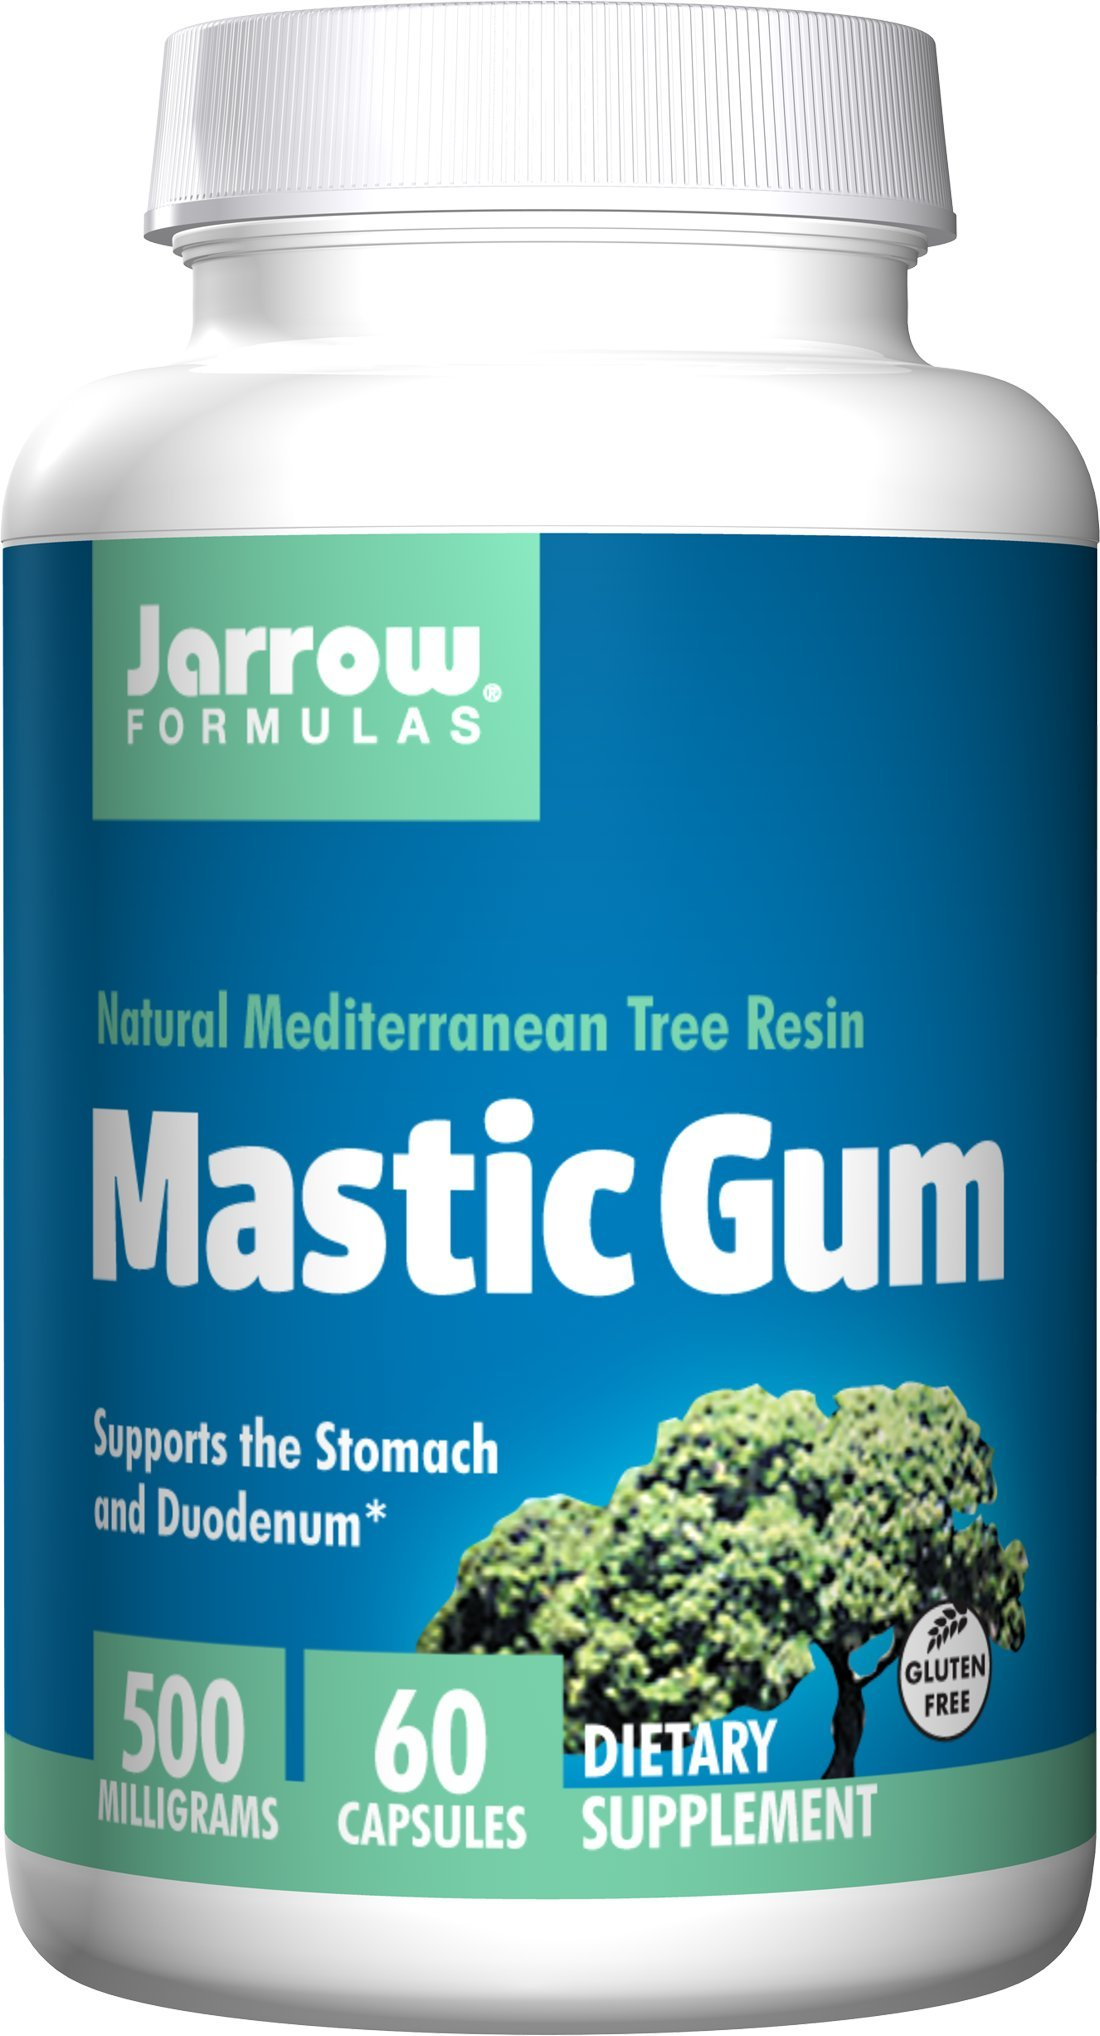 Jarrow Formulas - Mastic Gum 500 mg 60 caps (Pack of 2)